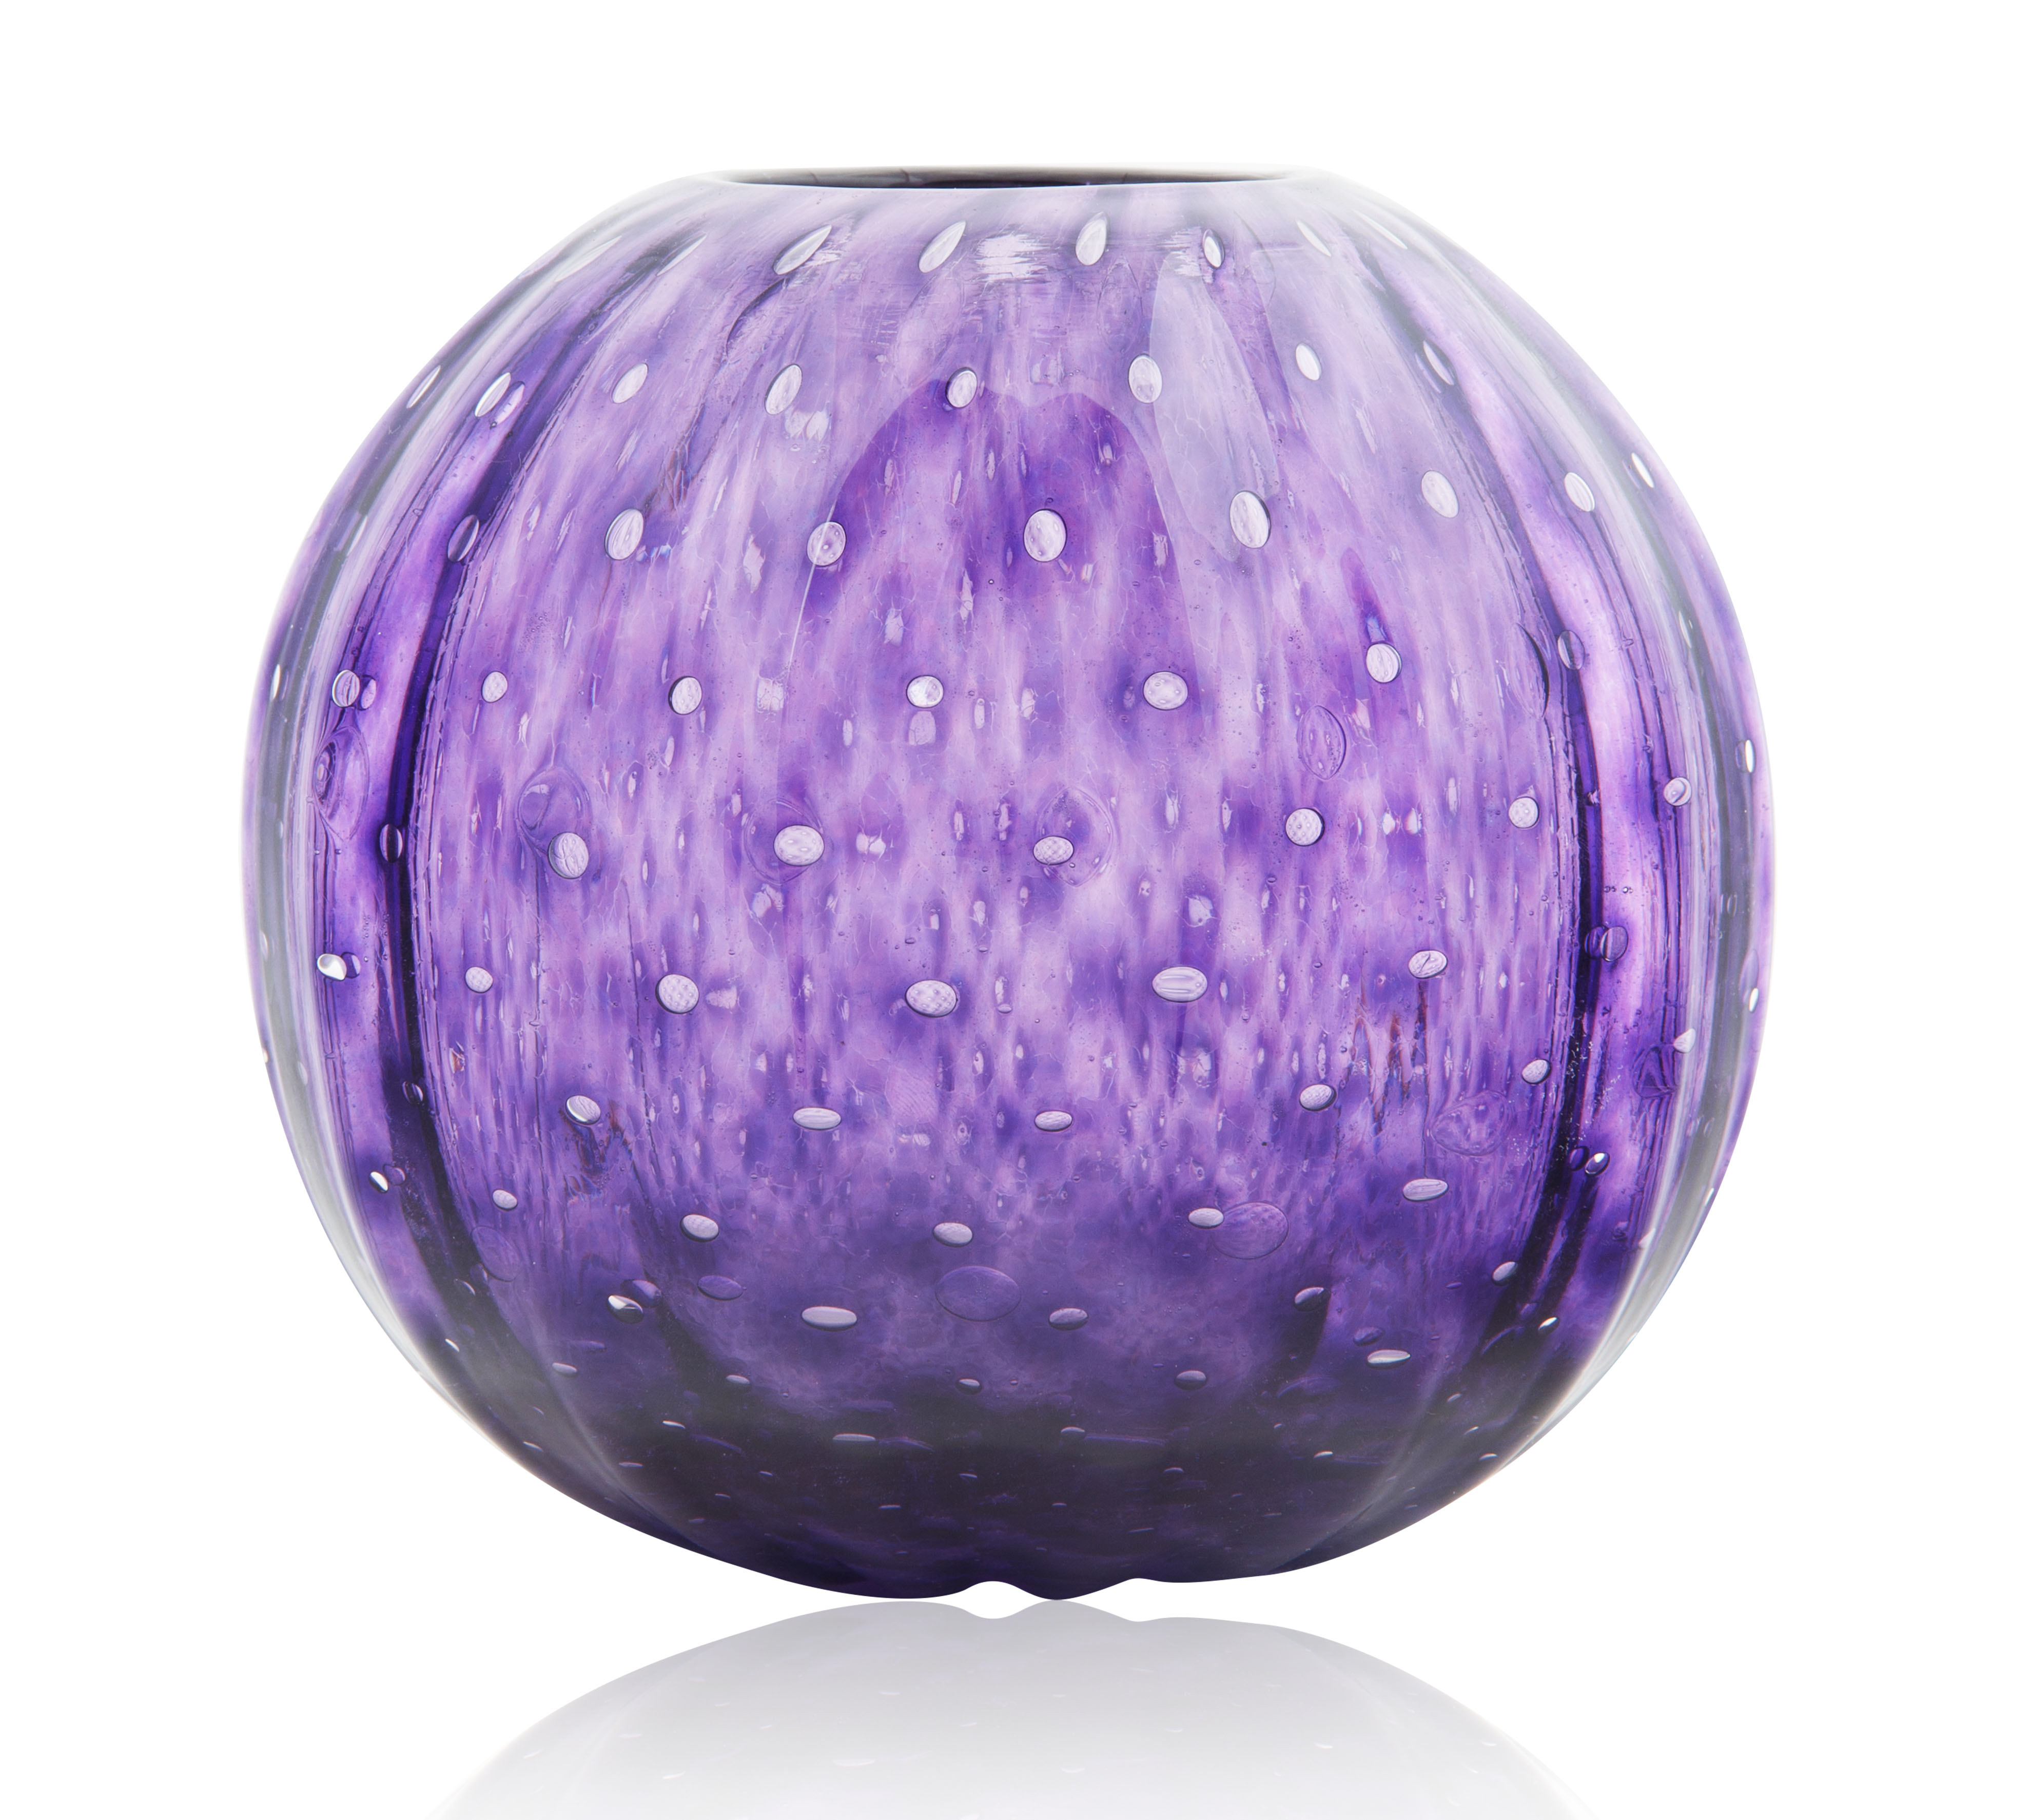 MOST LIKELY MURANO ITALIAN GLASS ROUND VASE - Image 2 of 4